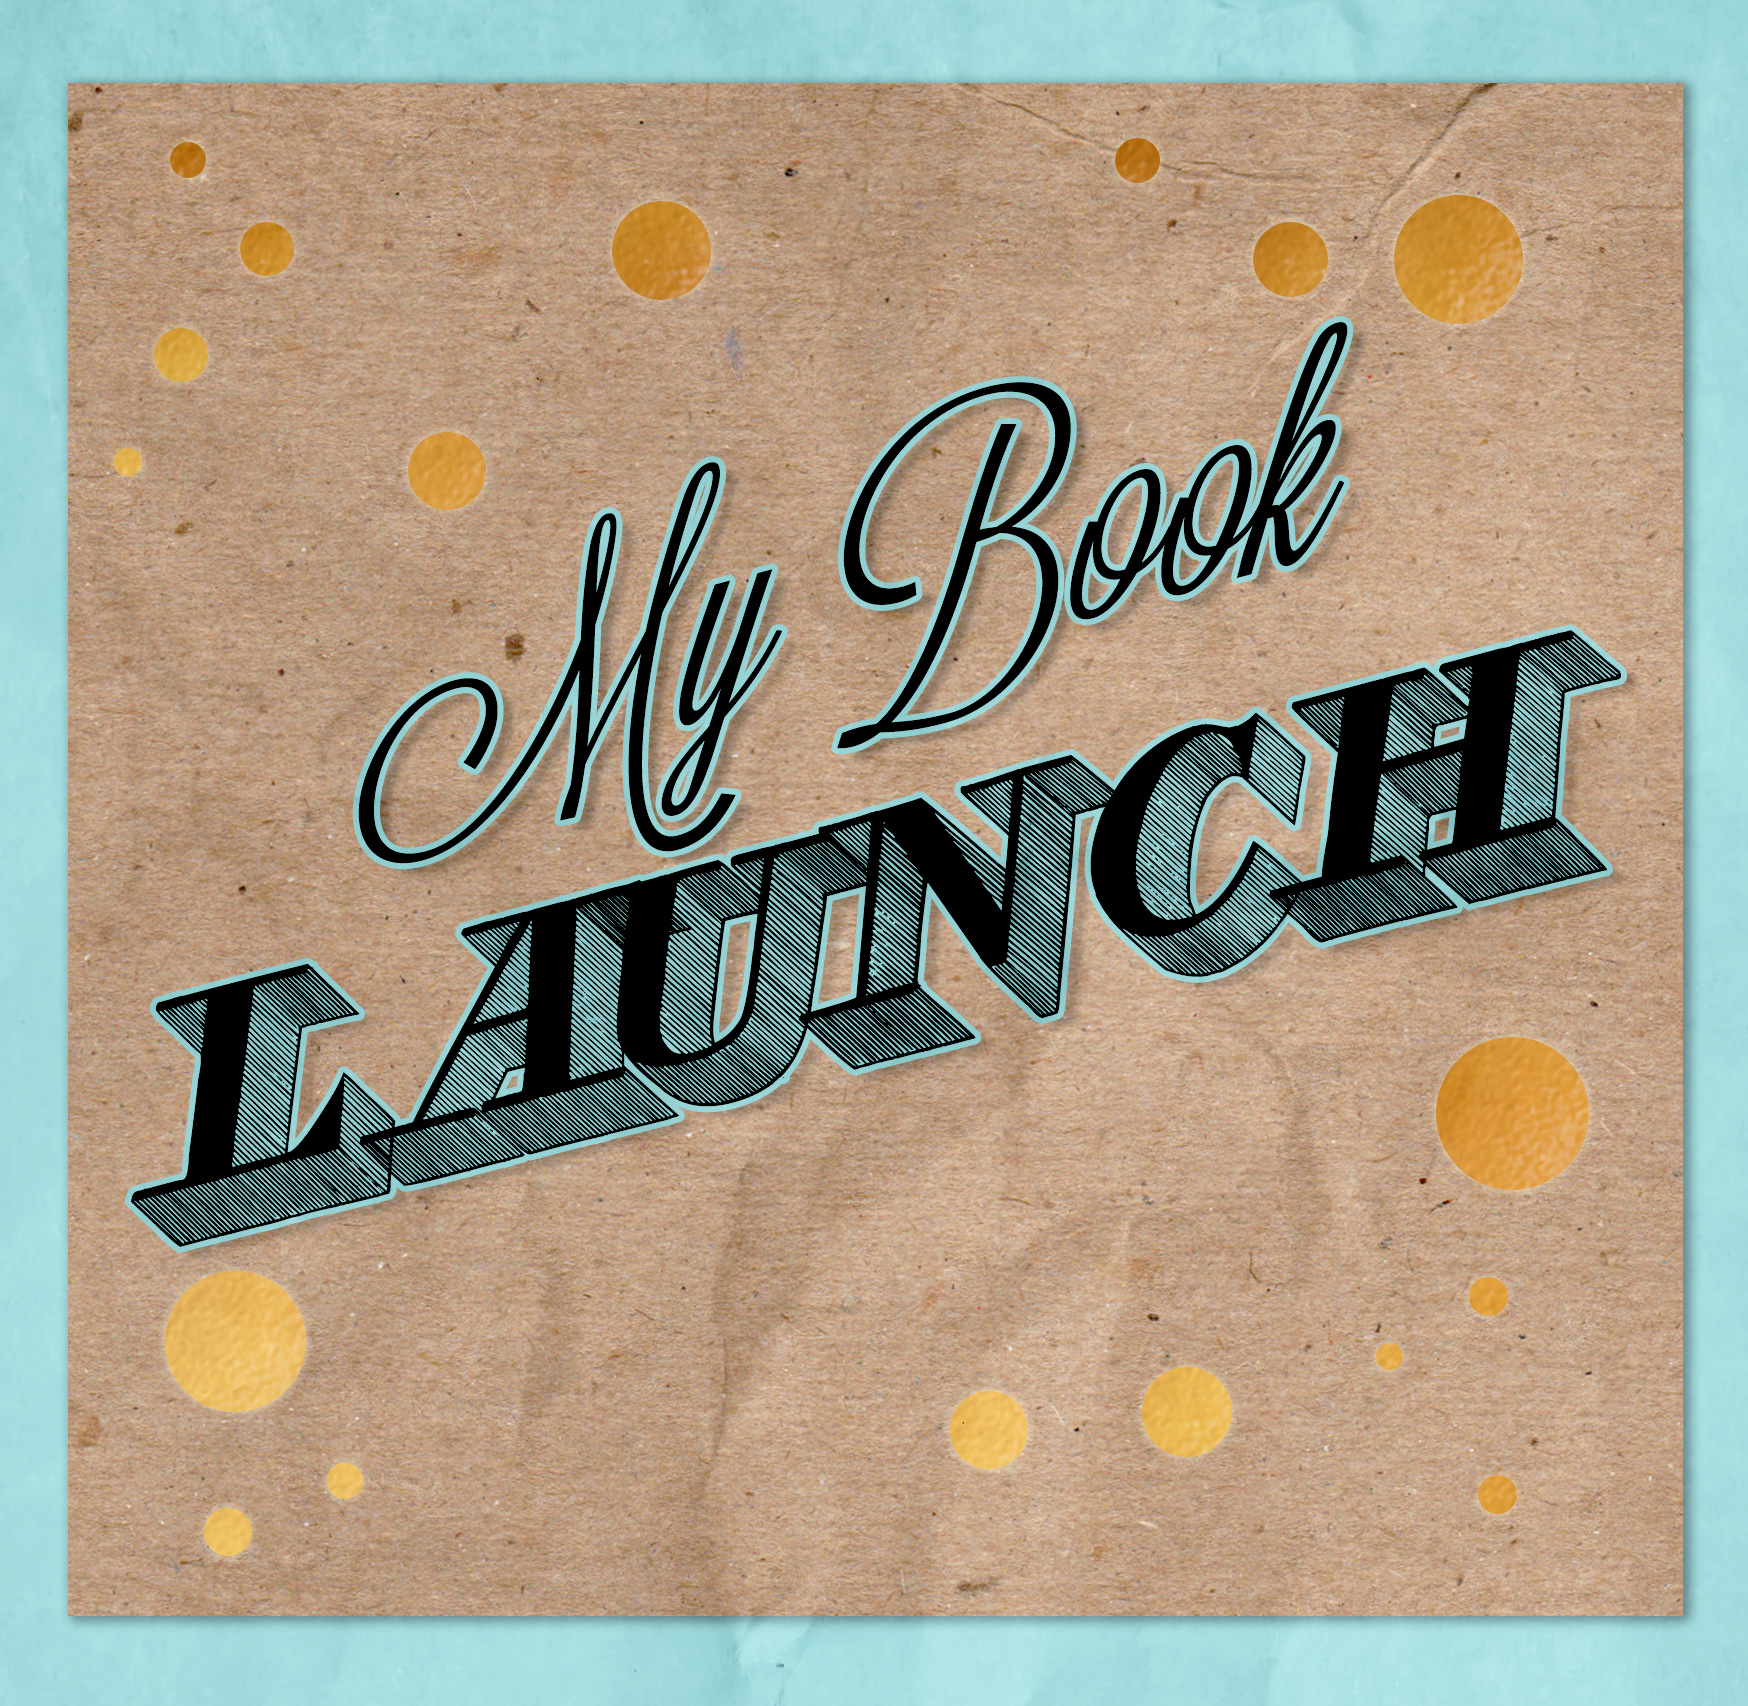 Who wants to come to my book launch? How to get an invite.